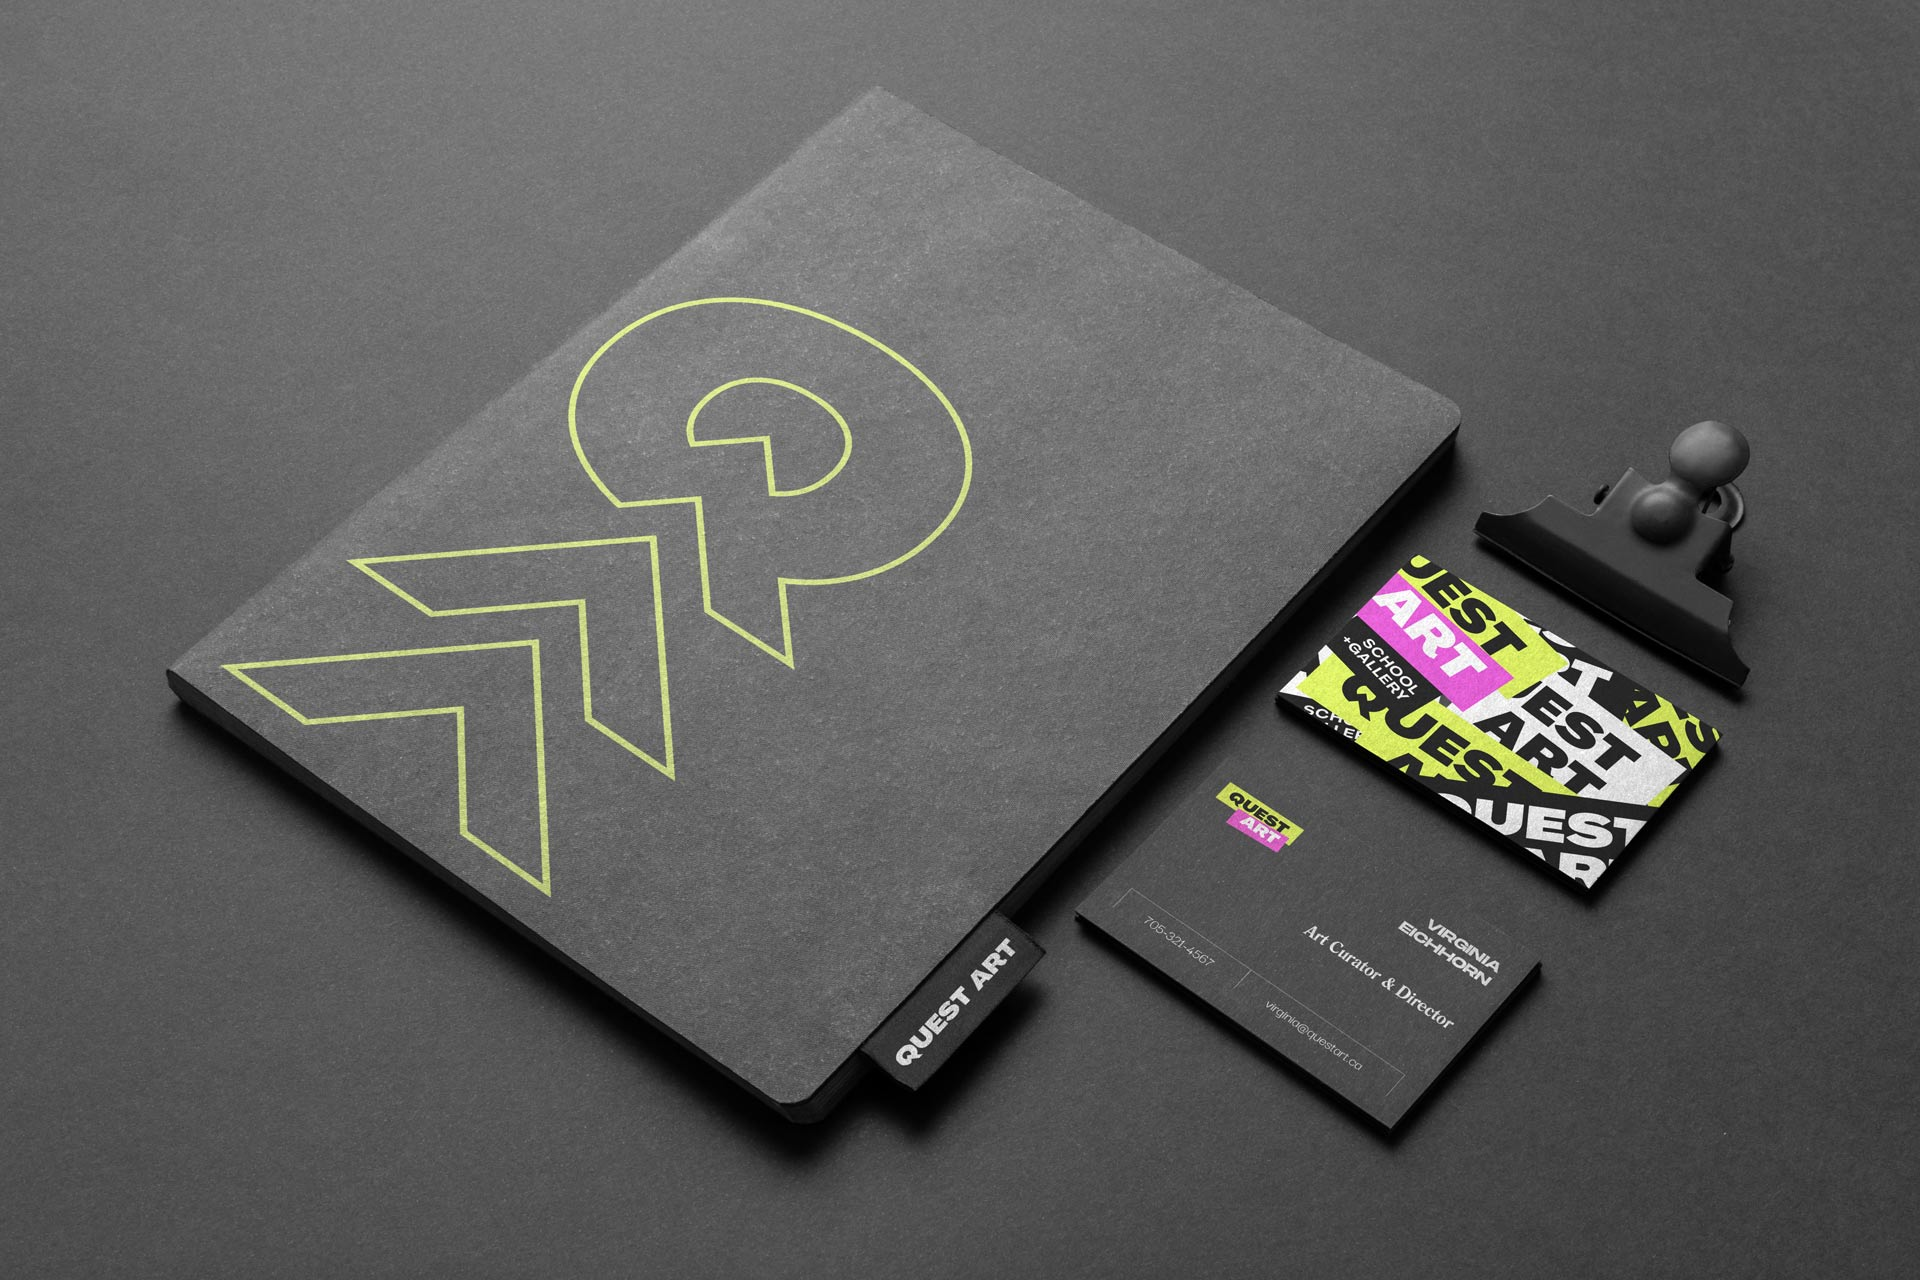 quest art school and gallery sketch book and business cards